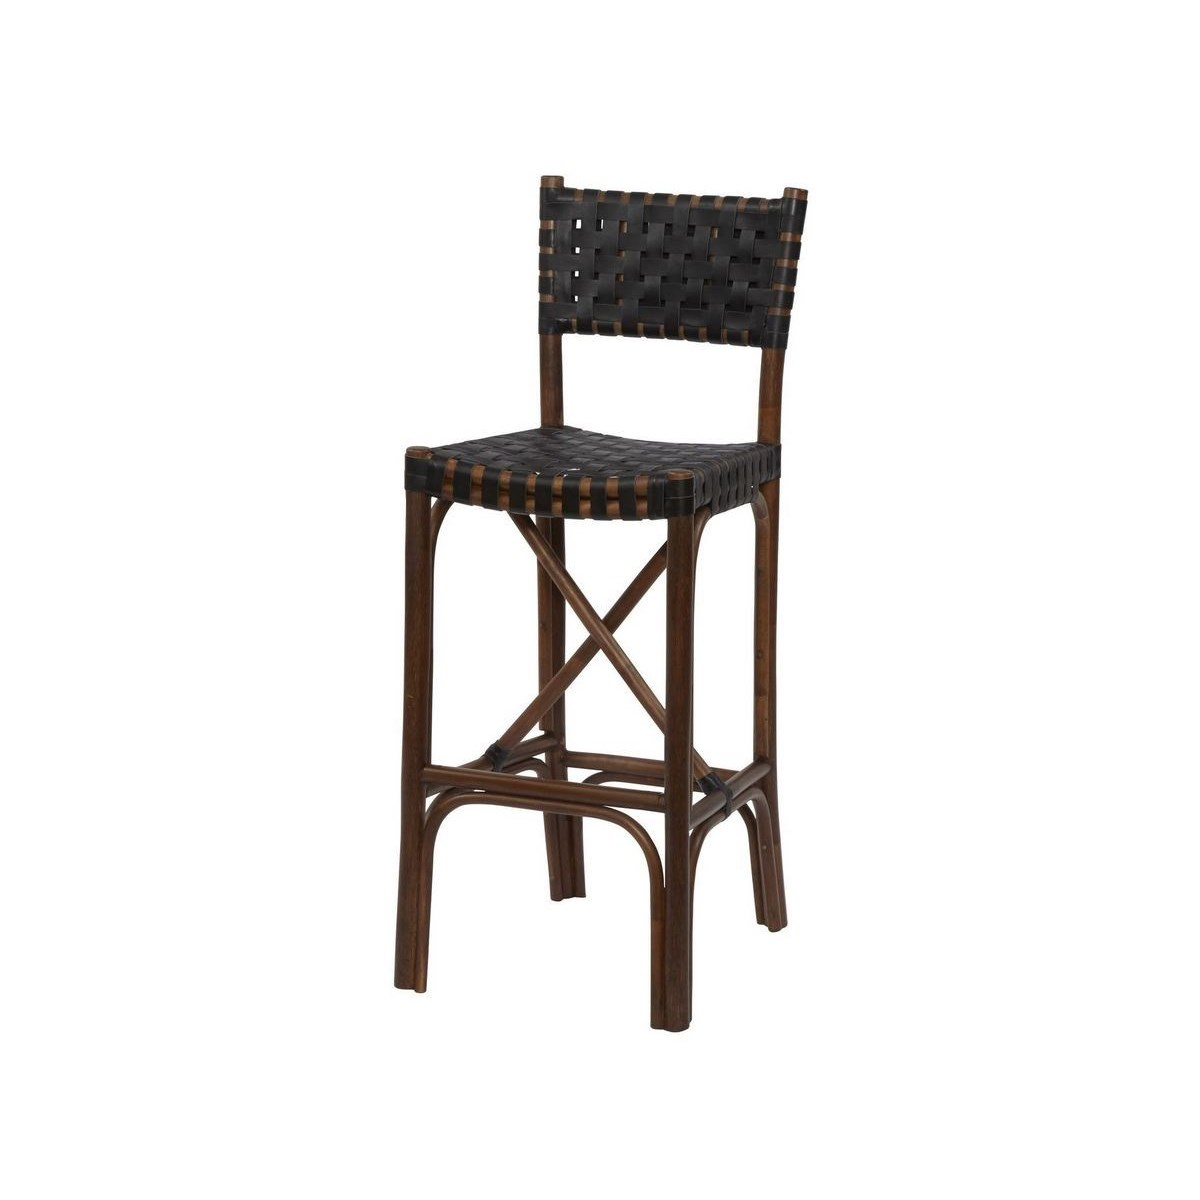 Malibu Bar Chair Frame Color - Cocoa  Leather Color - Black CLOSE-OUT - 50% OFF!SOLD AS-IS  ~